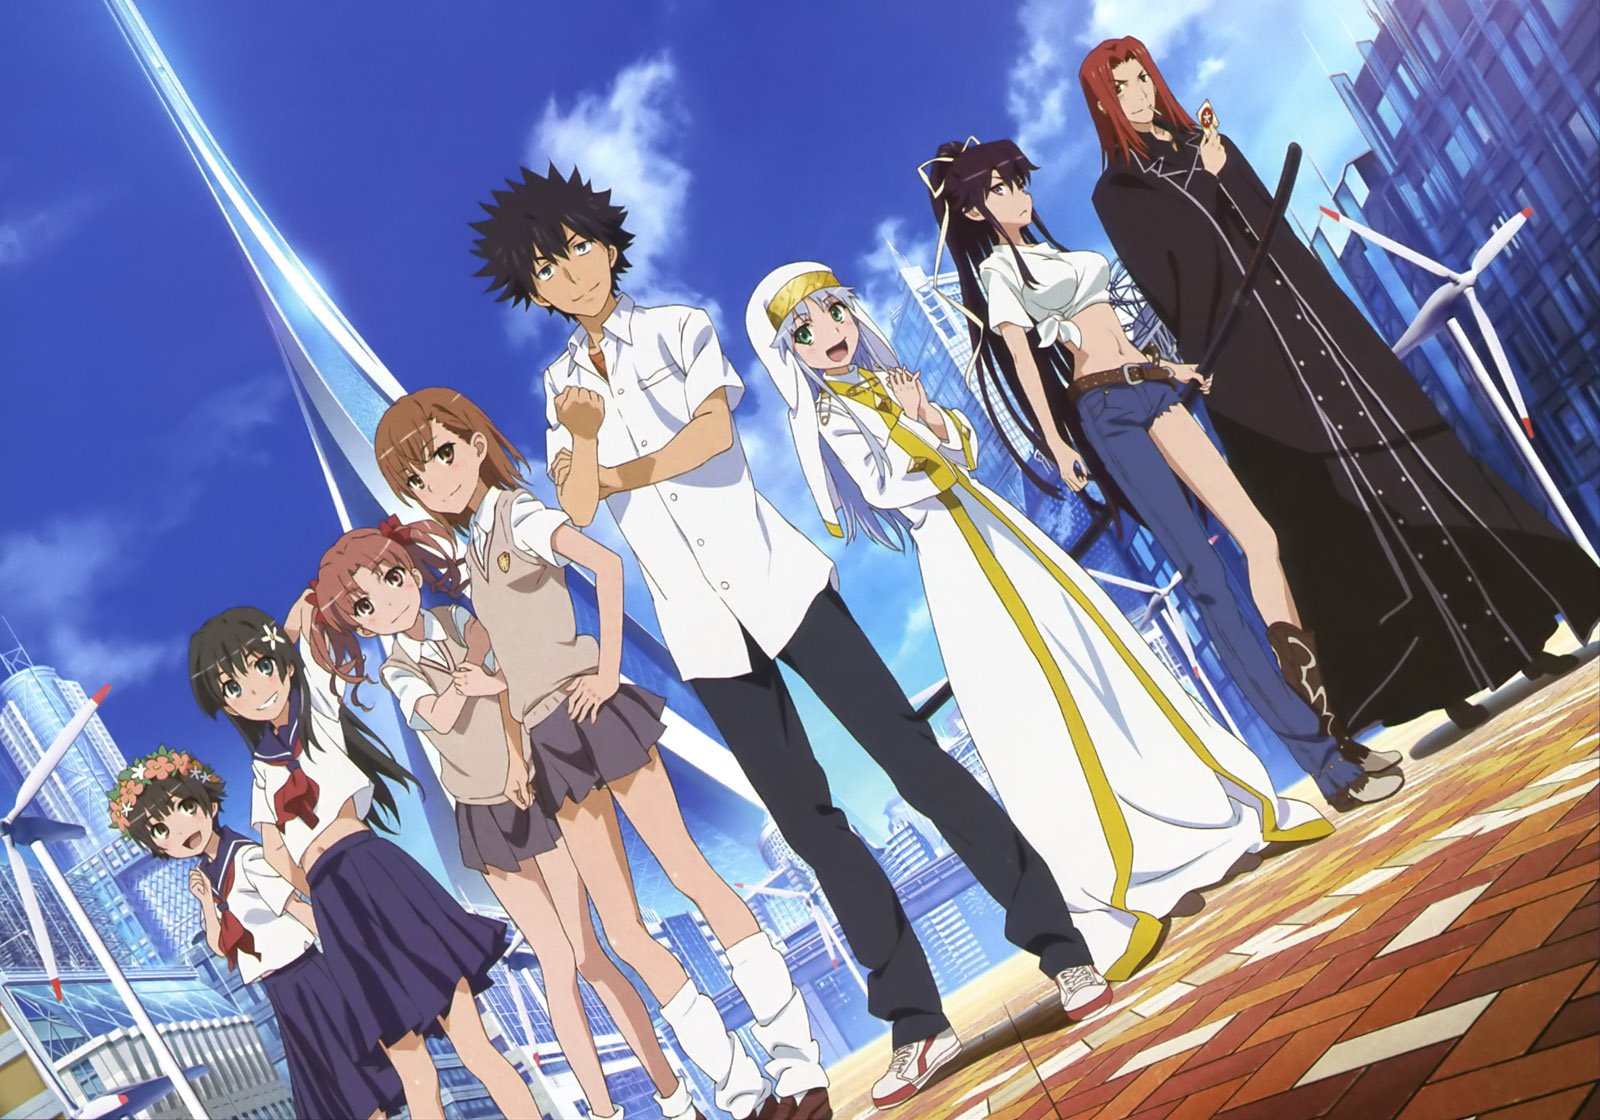 Top 30 addicting anime Top 30 Toaru Majutsu no Index haruhichan.com series